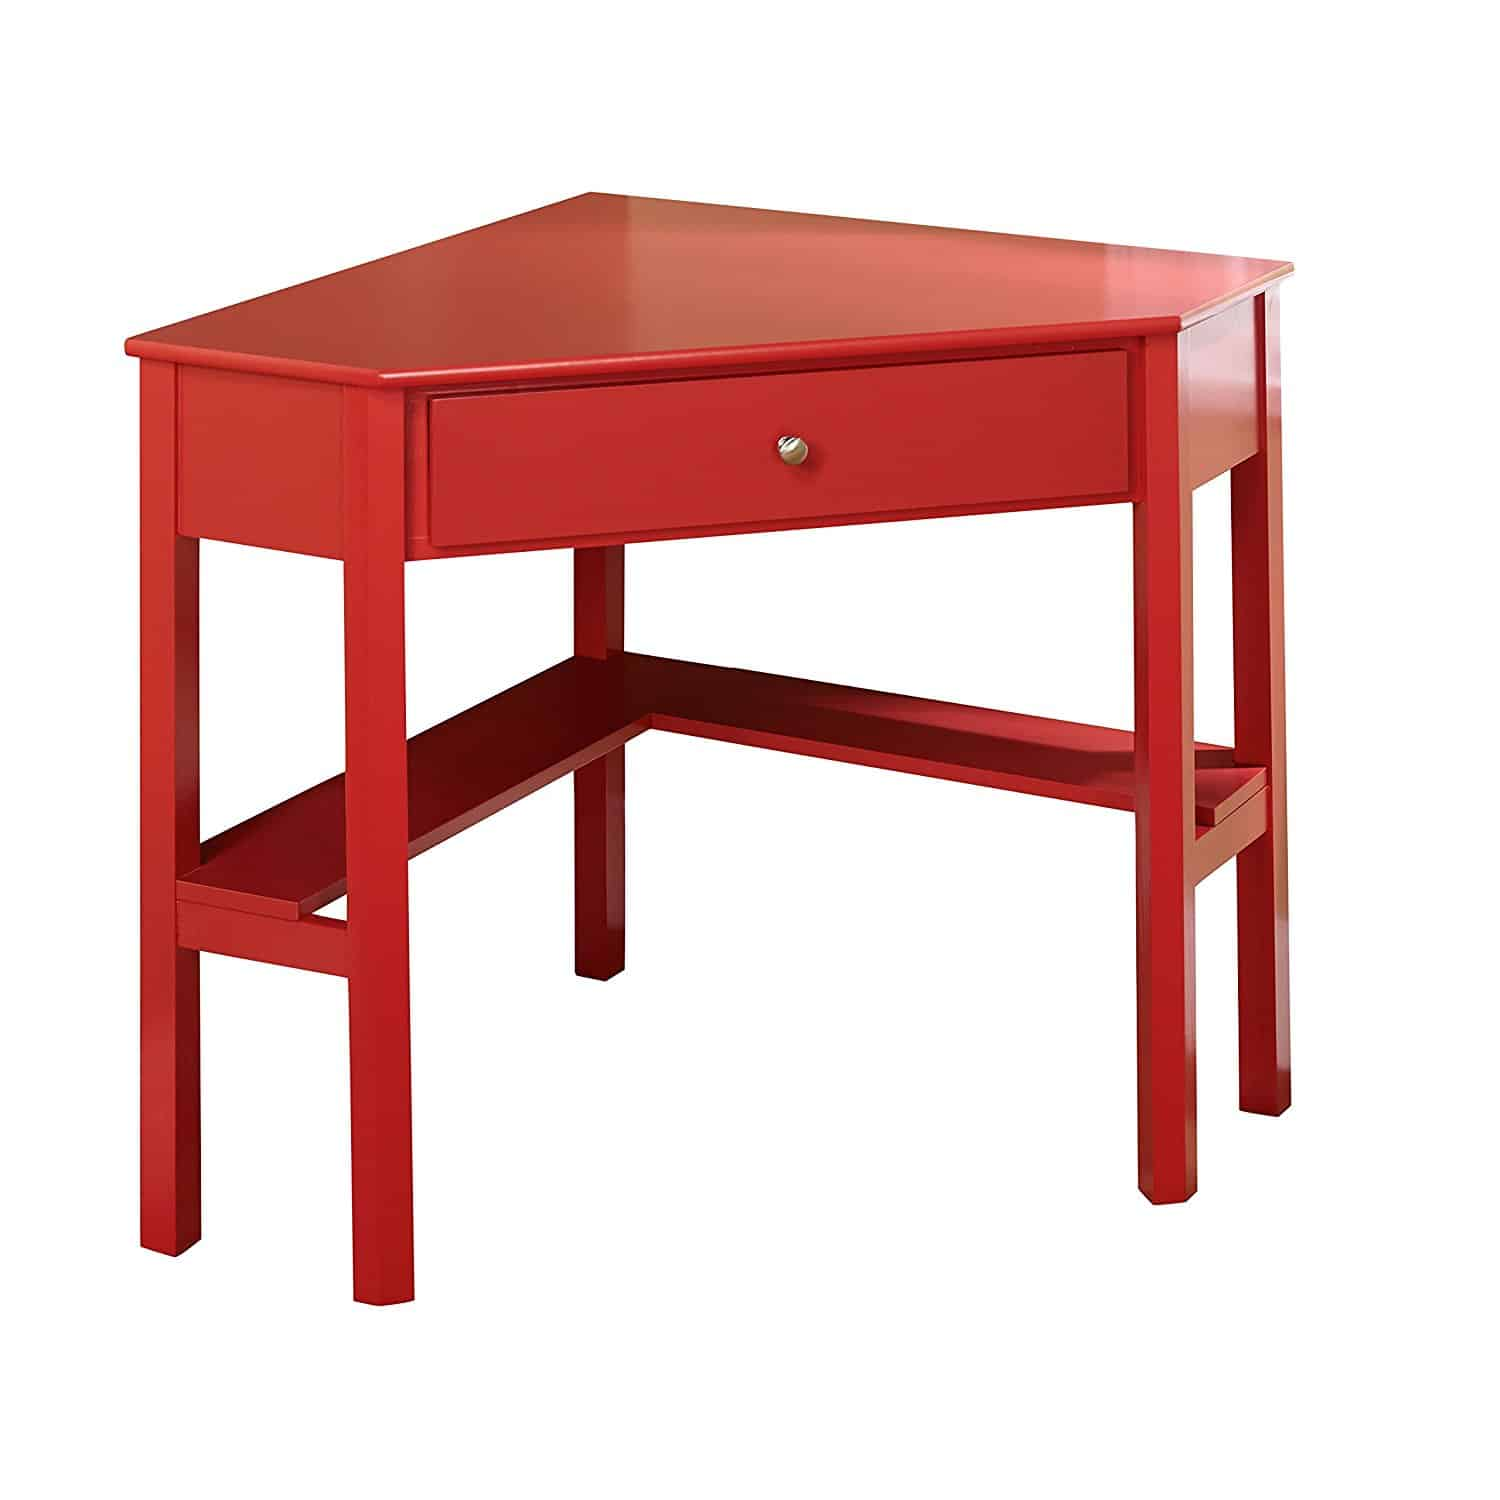 Small Red Corner Table With One Drawer And One Storage Shelf.